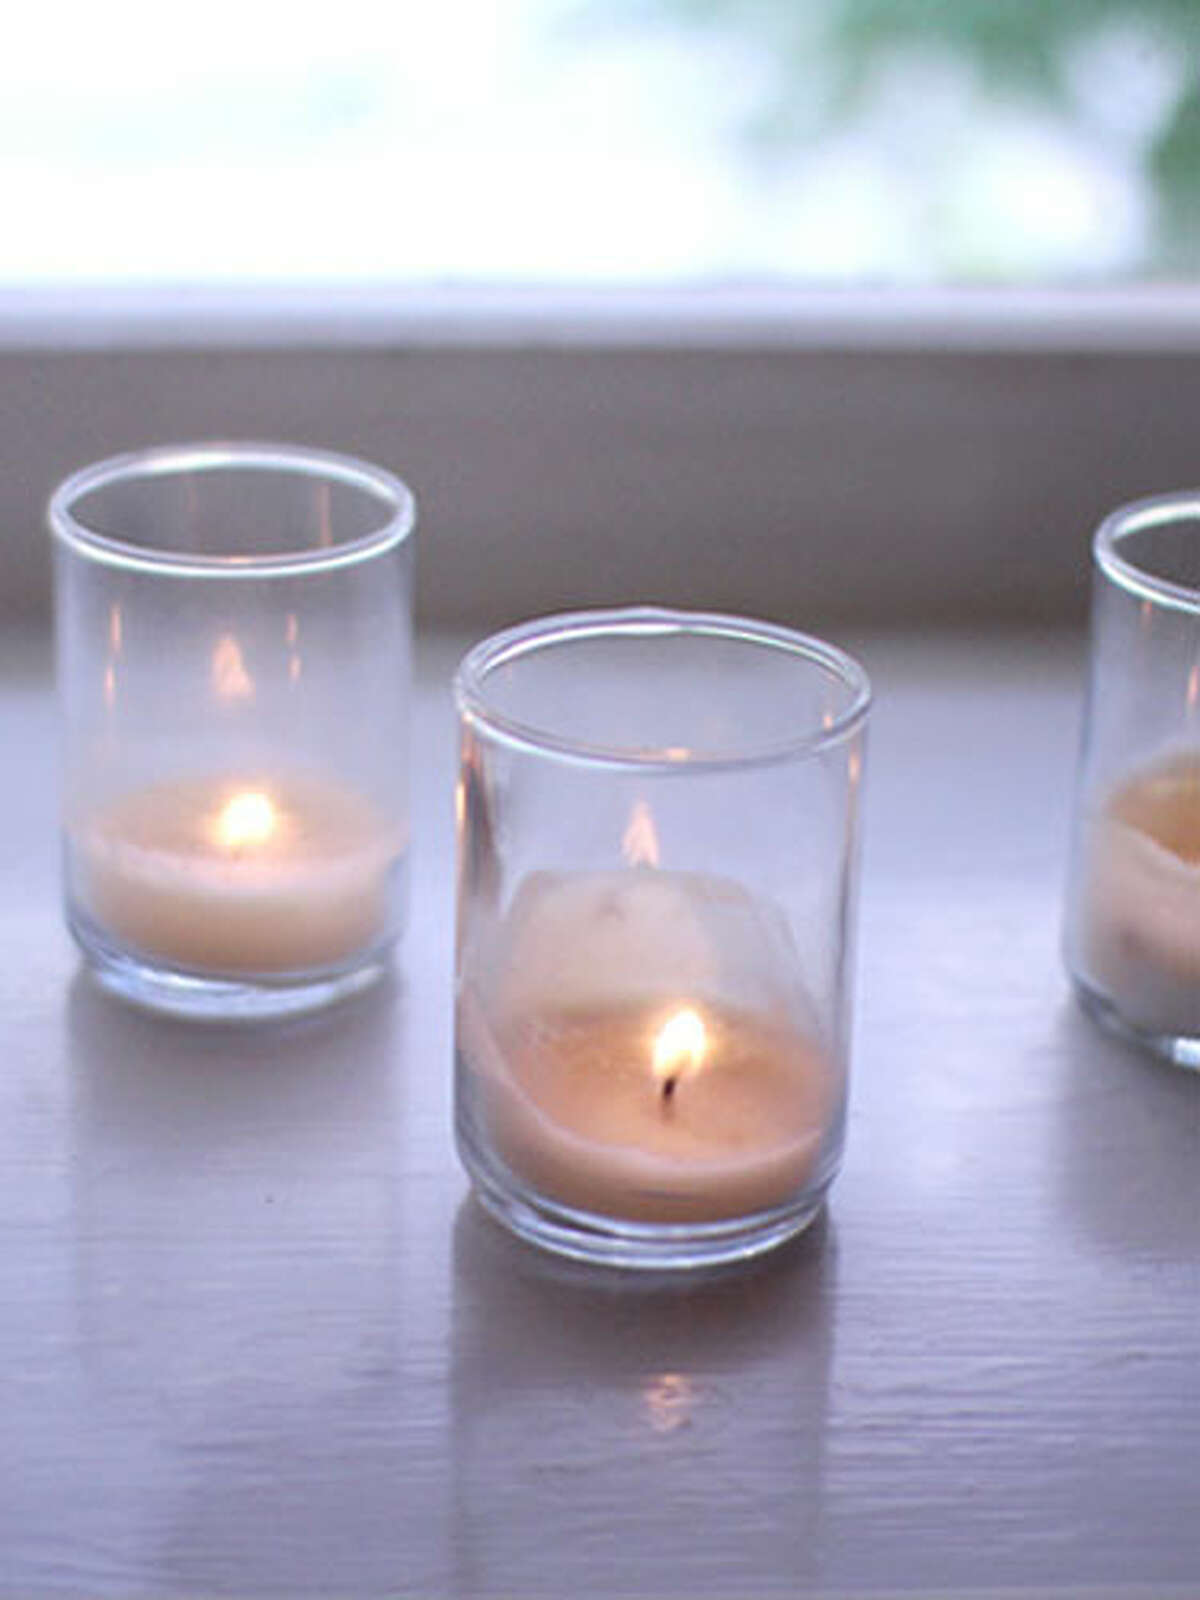 A British woman died after lighting candles for a romantic night with her imaginary boyfriend and accidentally set her house on fire.